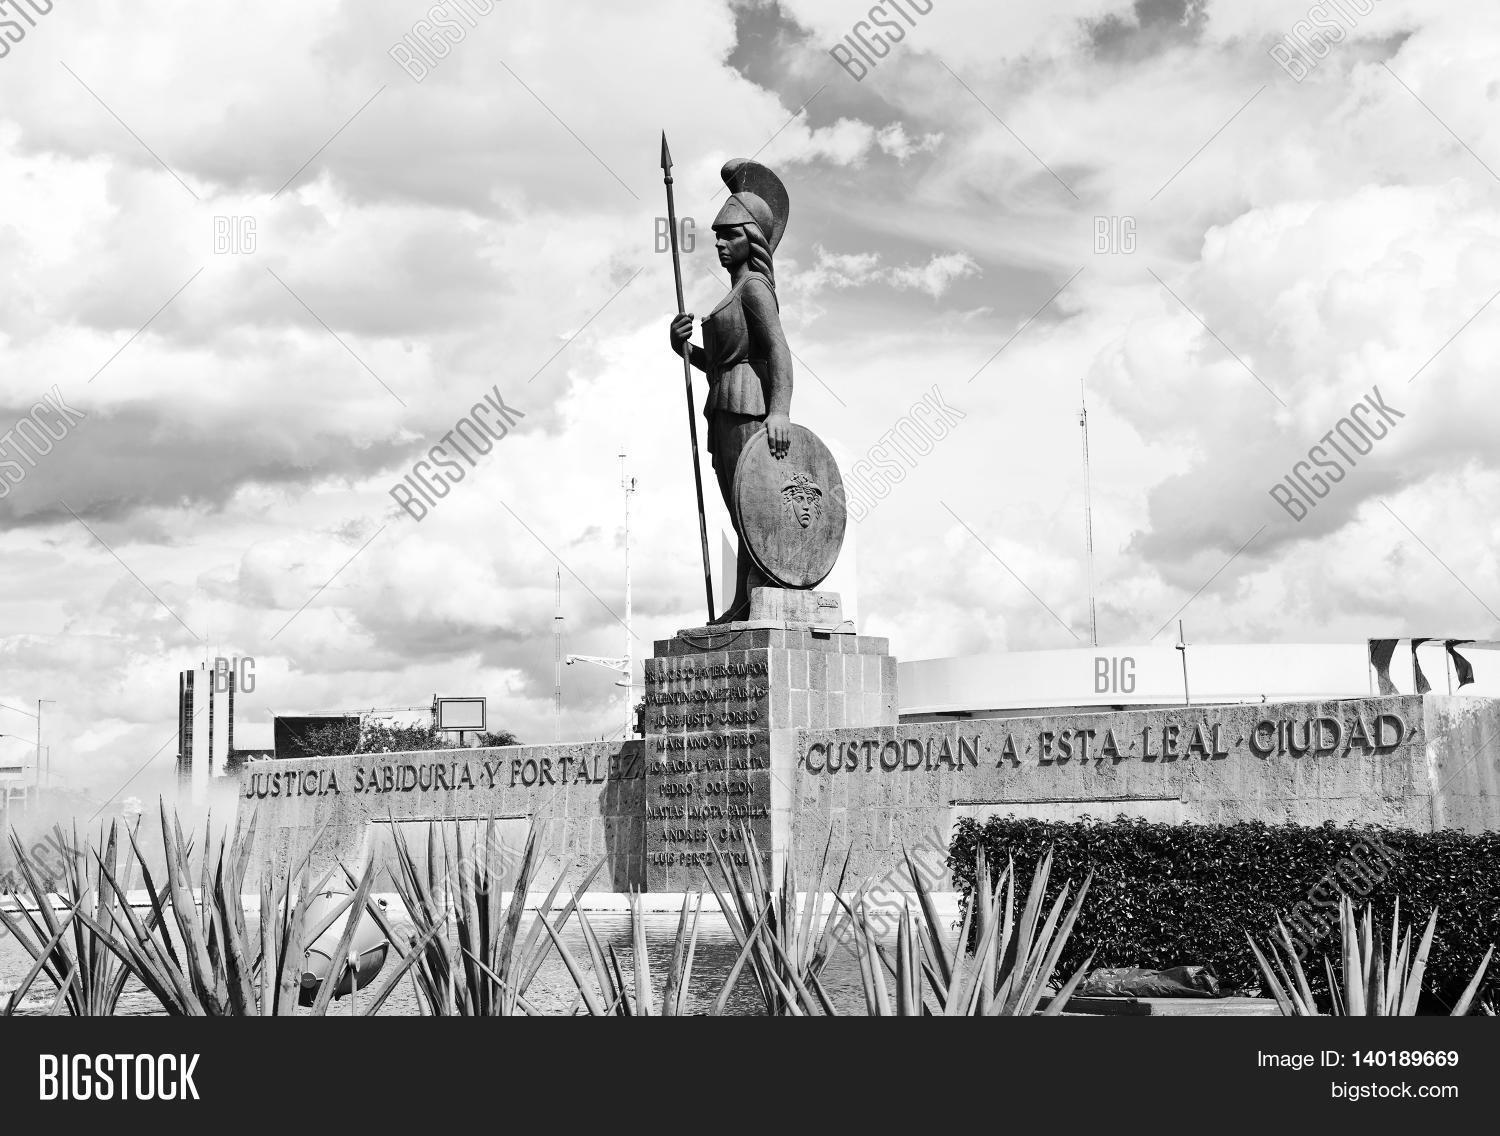 Monuments of guadalajara jalisco mexico black and white